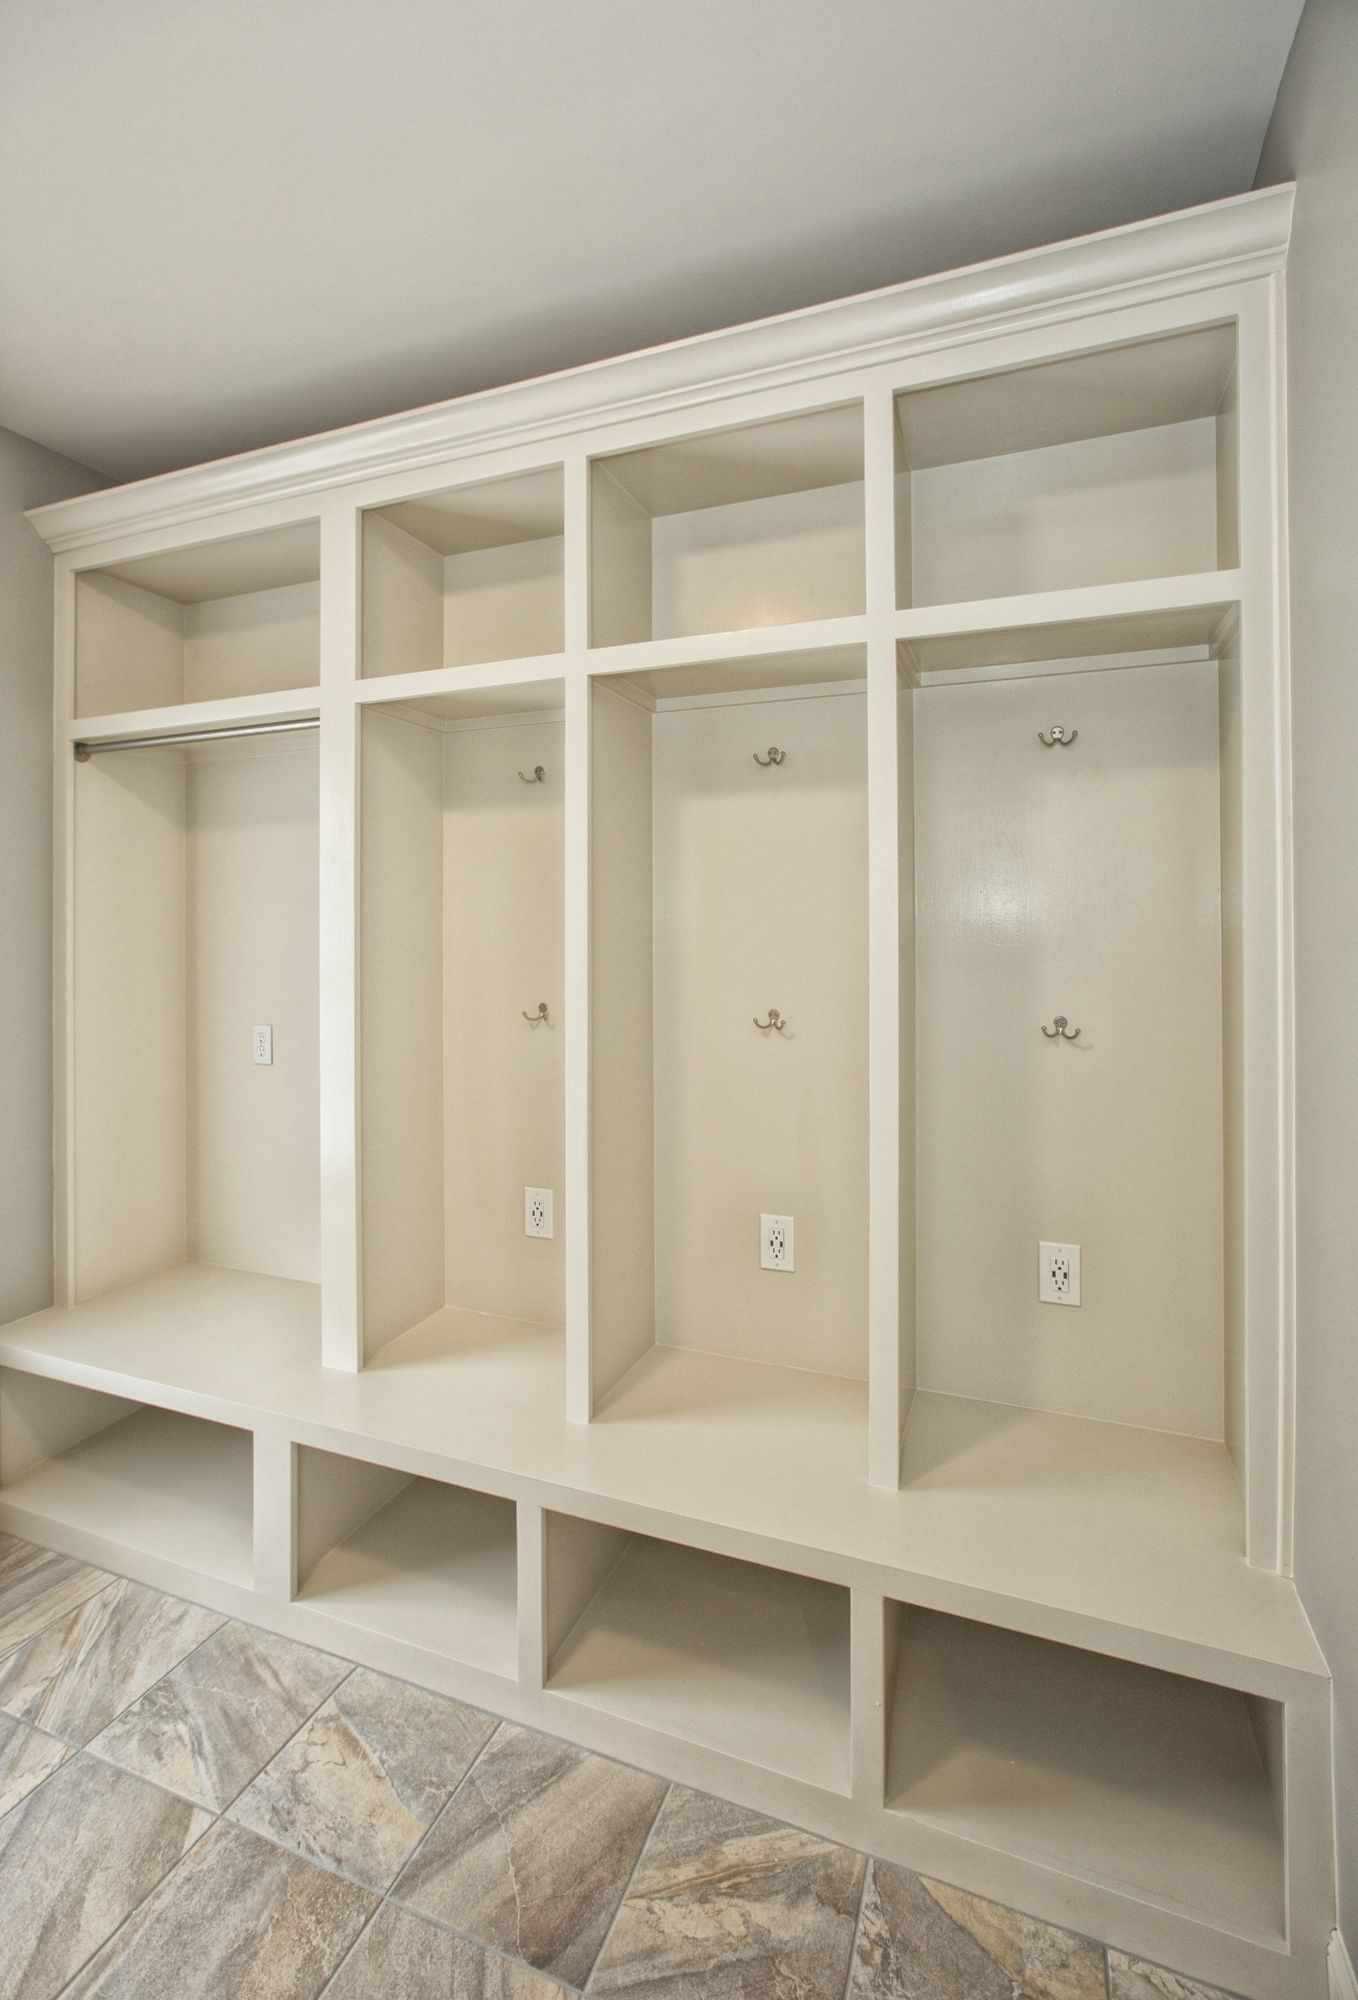 Mudroom Cubbies With Usb Charging Station In A Laundry Room Remodel